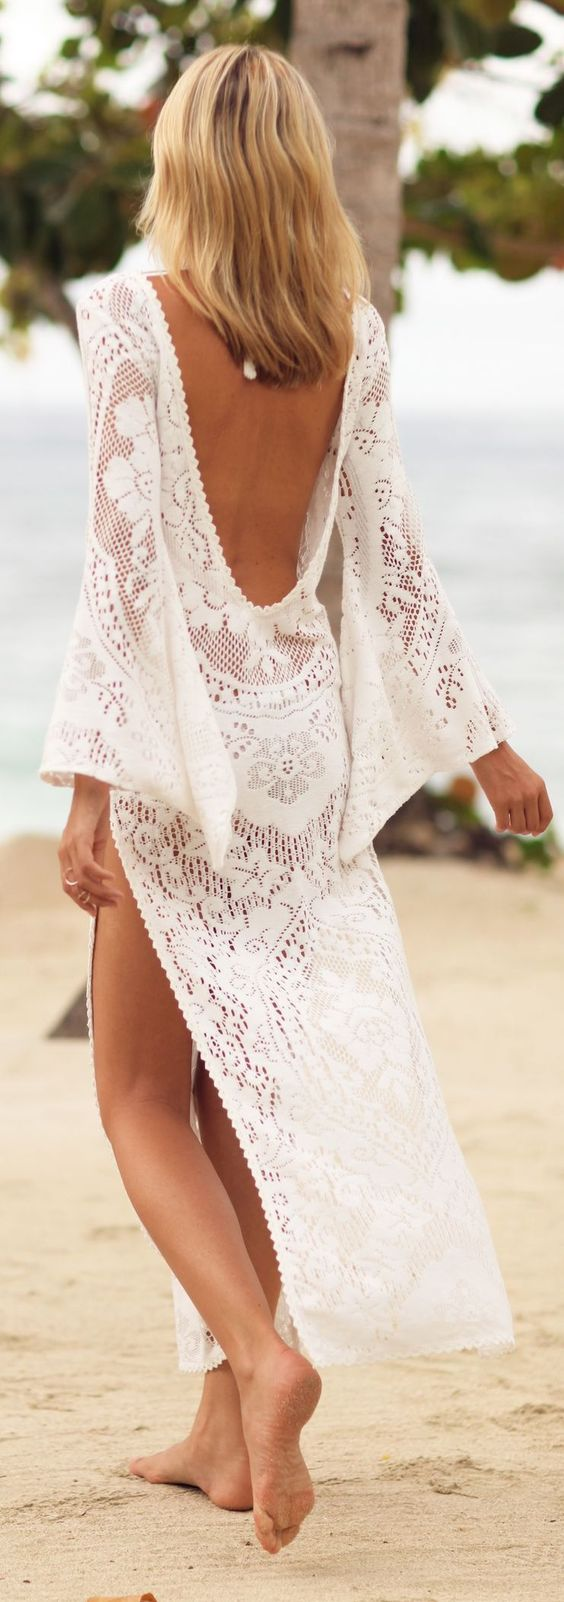 White Crochet Backless Maxi Cover Up: